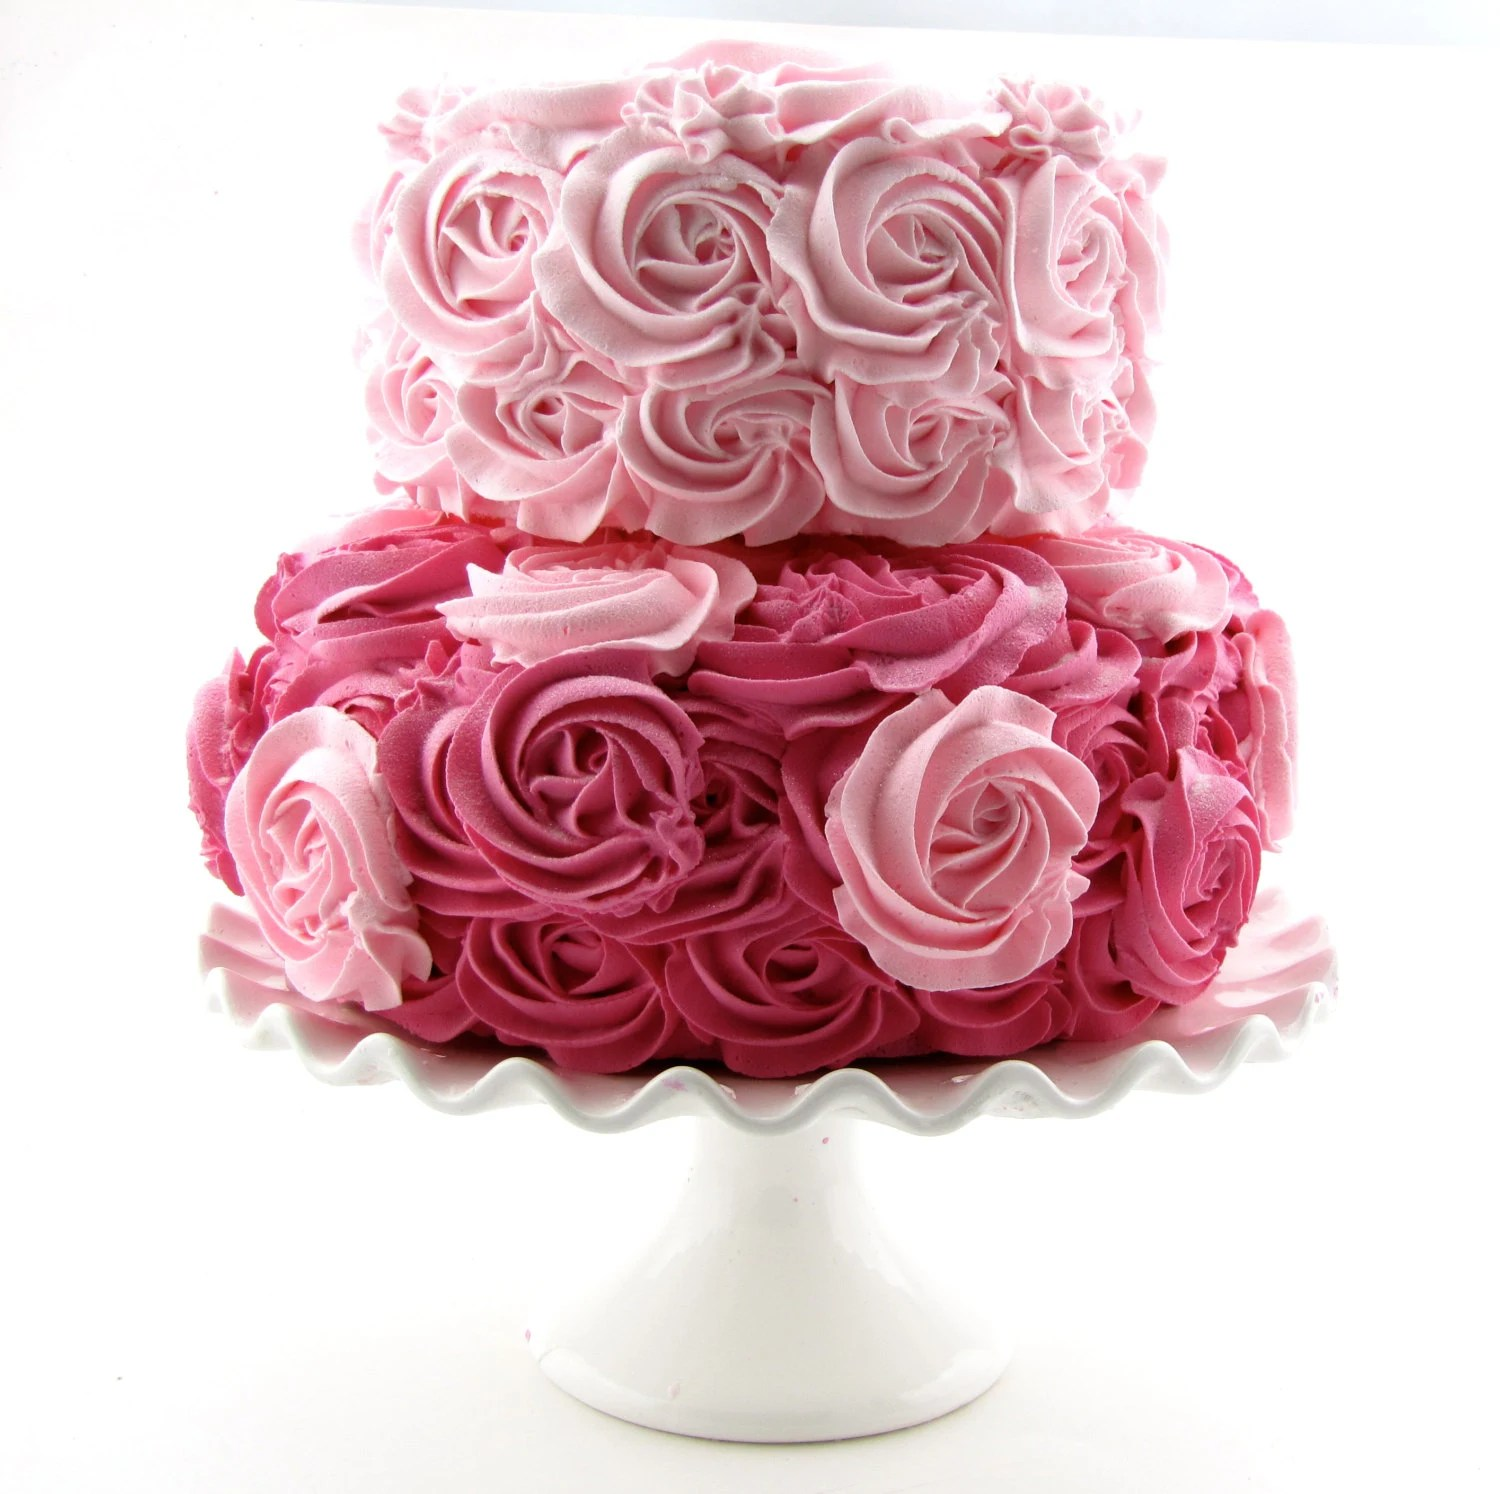 rosette fake cake fake wedding cakes Pink Hot Pink Rosette Fake Cake Stackable 2 Tier Cake Bottom Tier Approx 9 w 4 25 h Top Tier Approx 6 75 w 4 h Fab Photo Prop